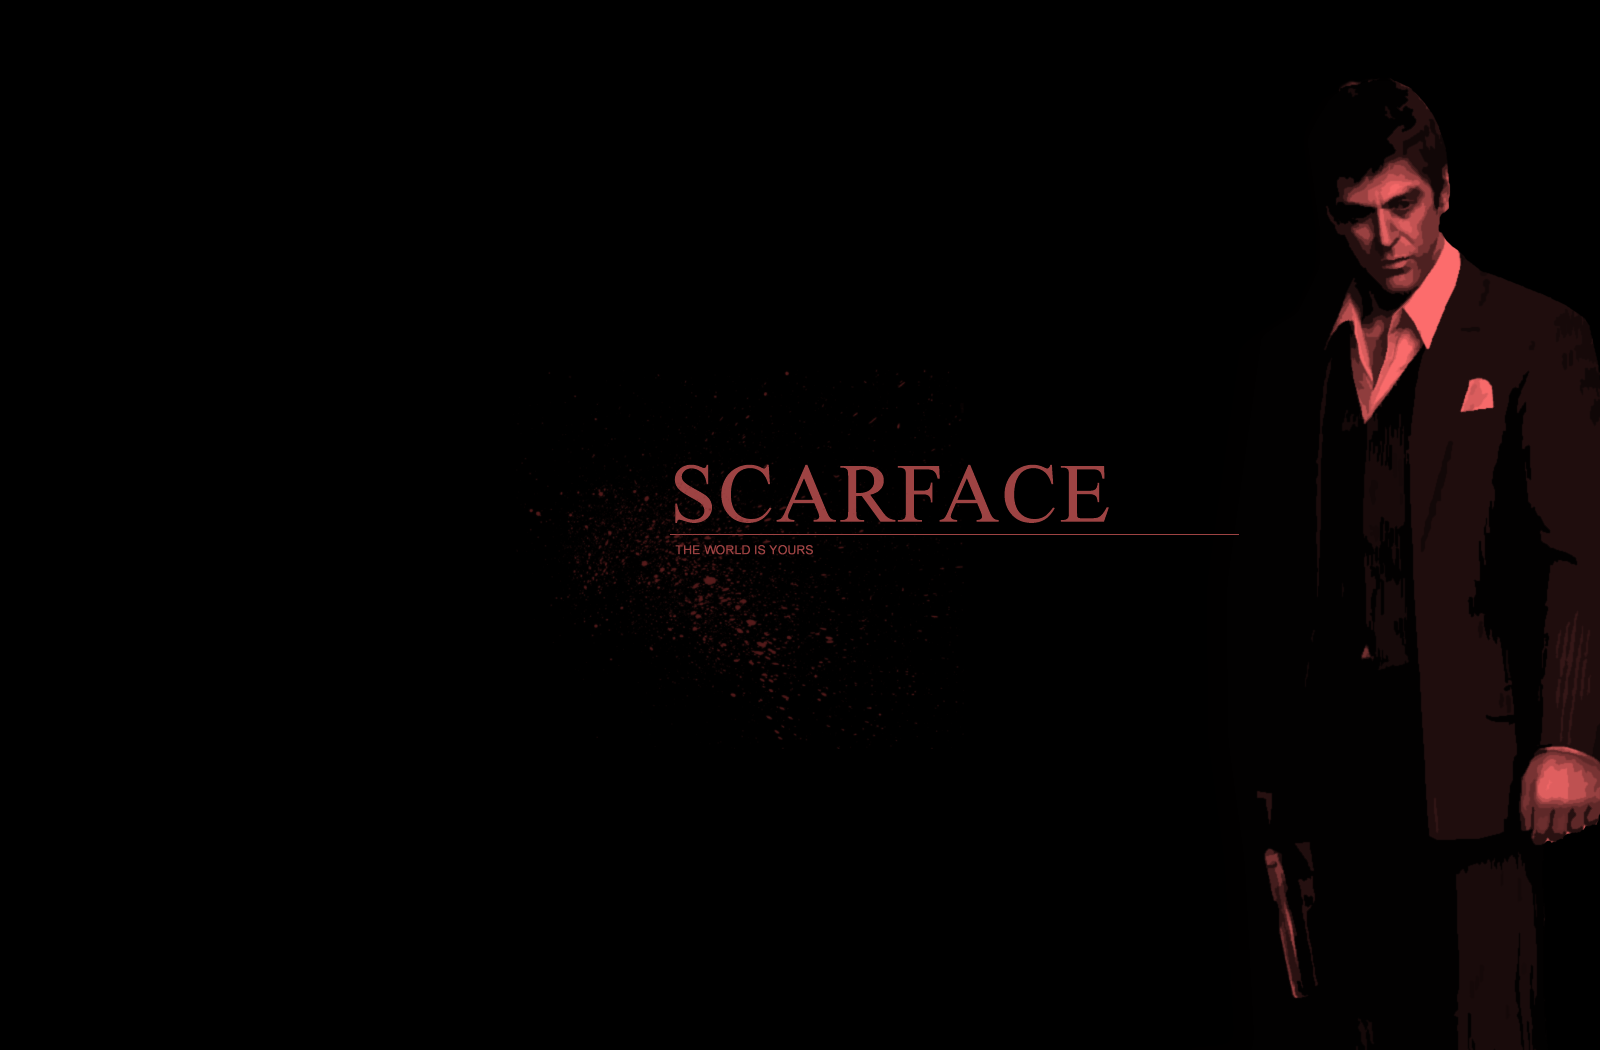 Scarface_wallpaper2